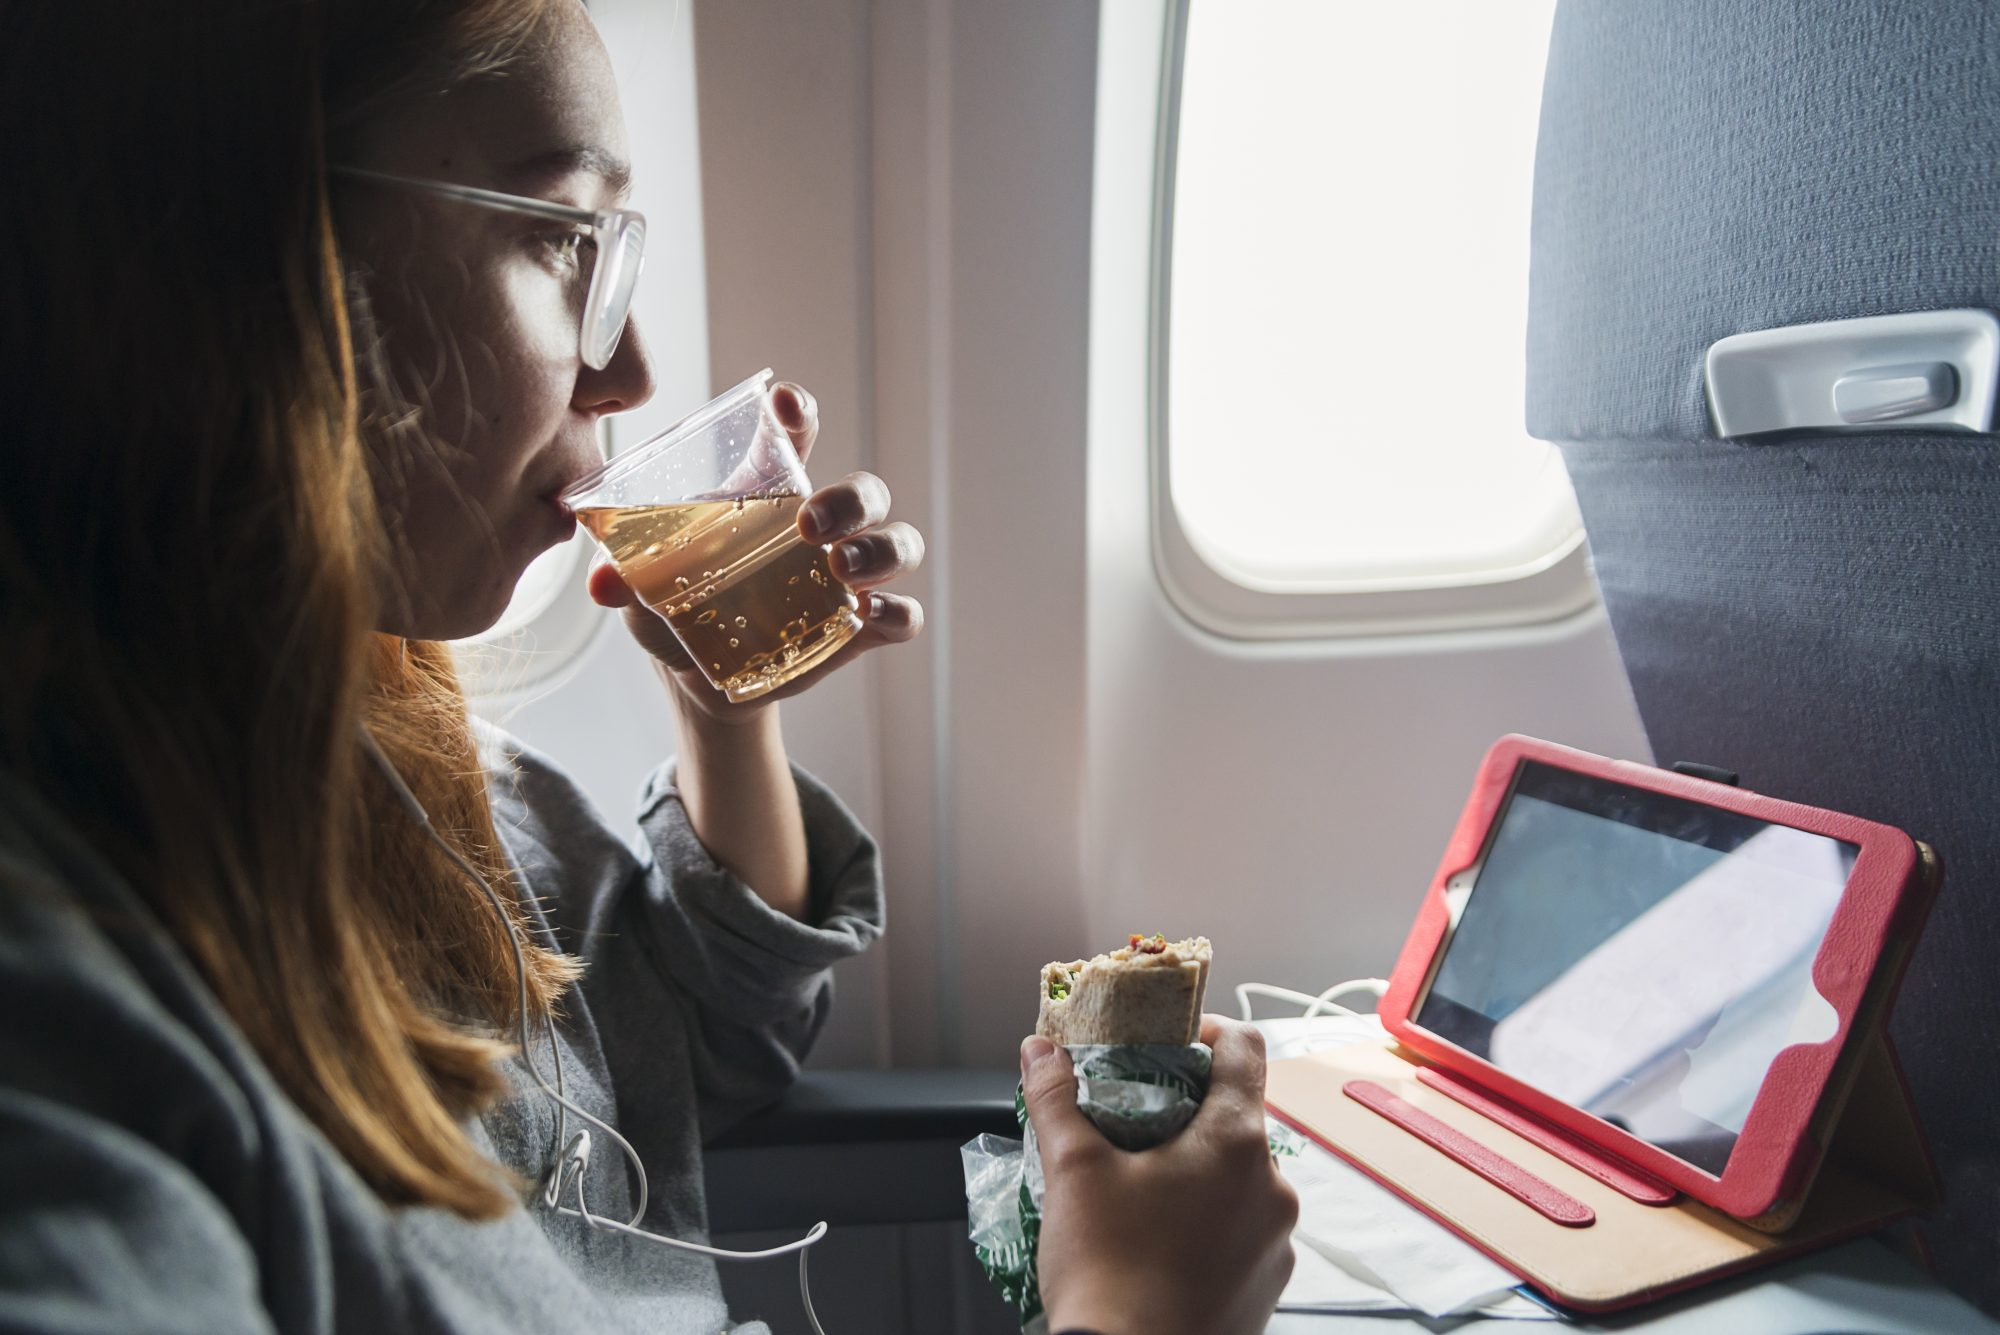 Woman on plane having a meal